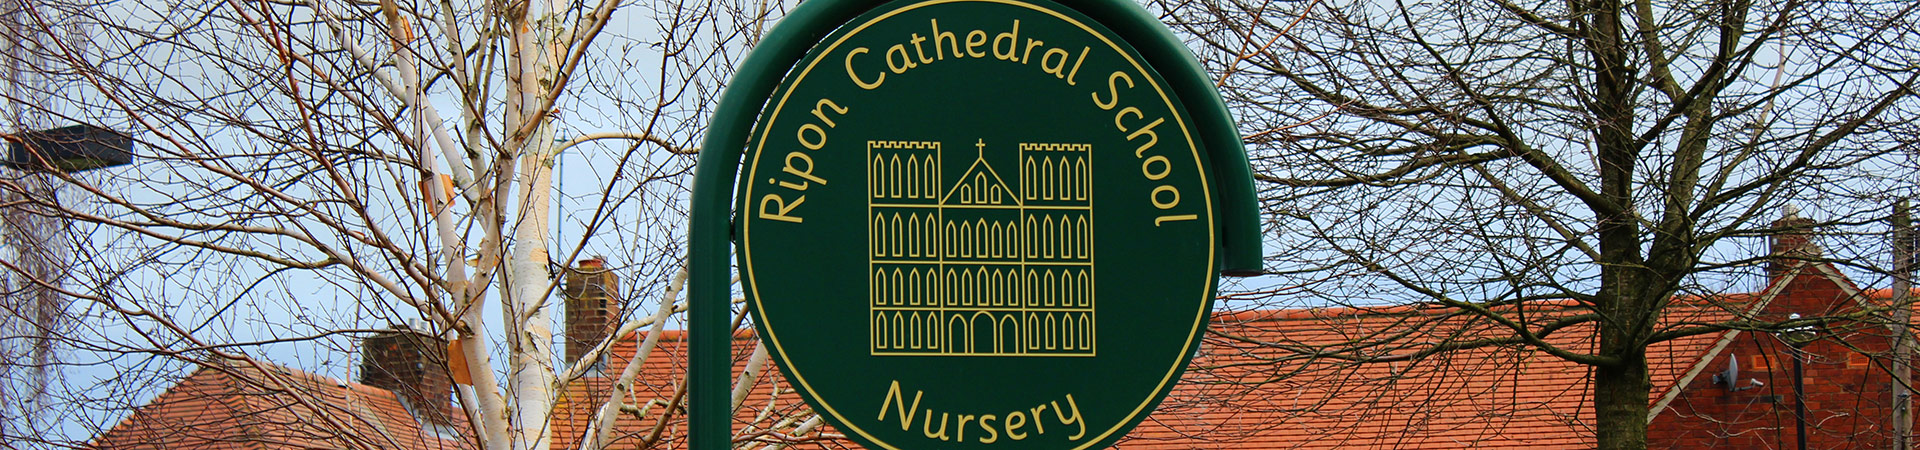 Ripon Cathedral School case study